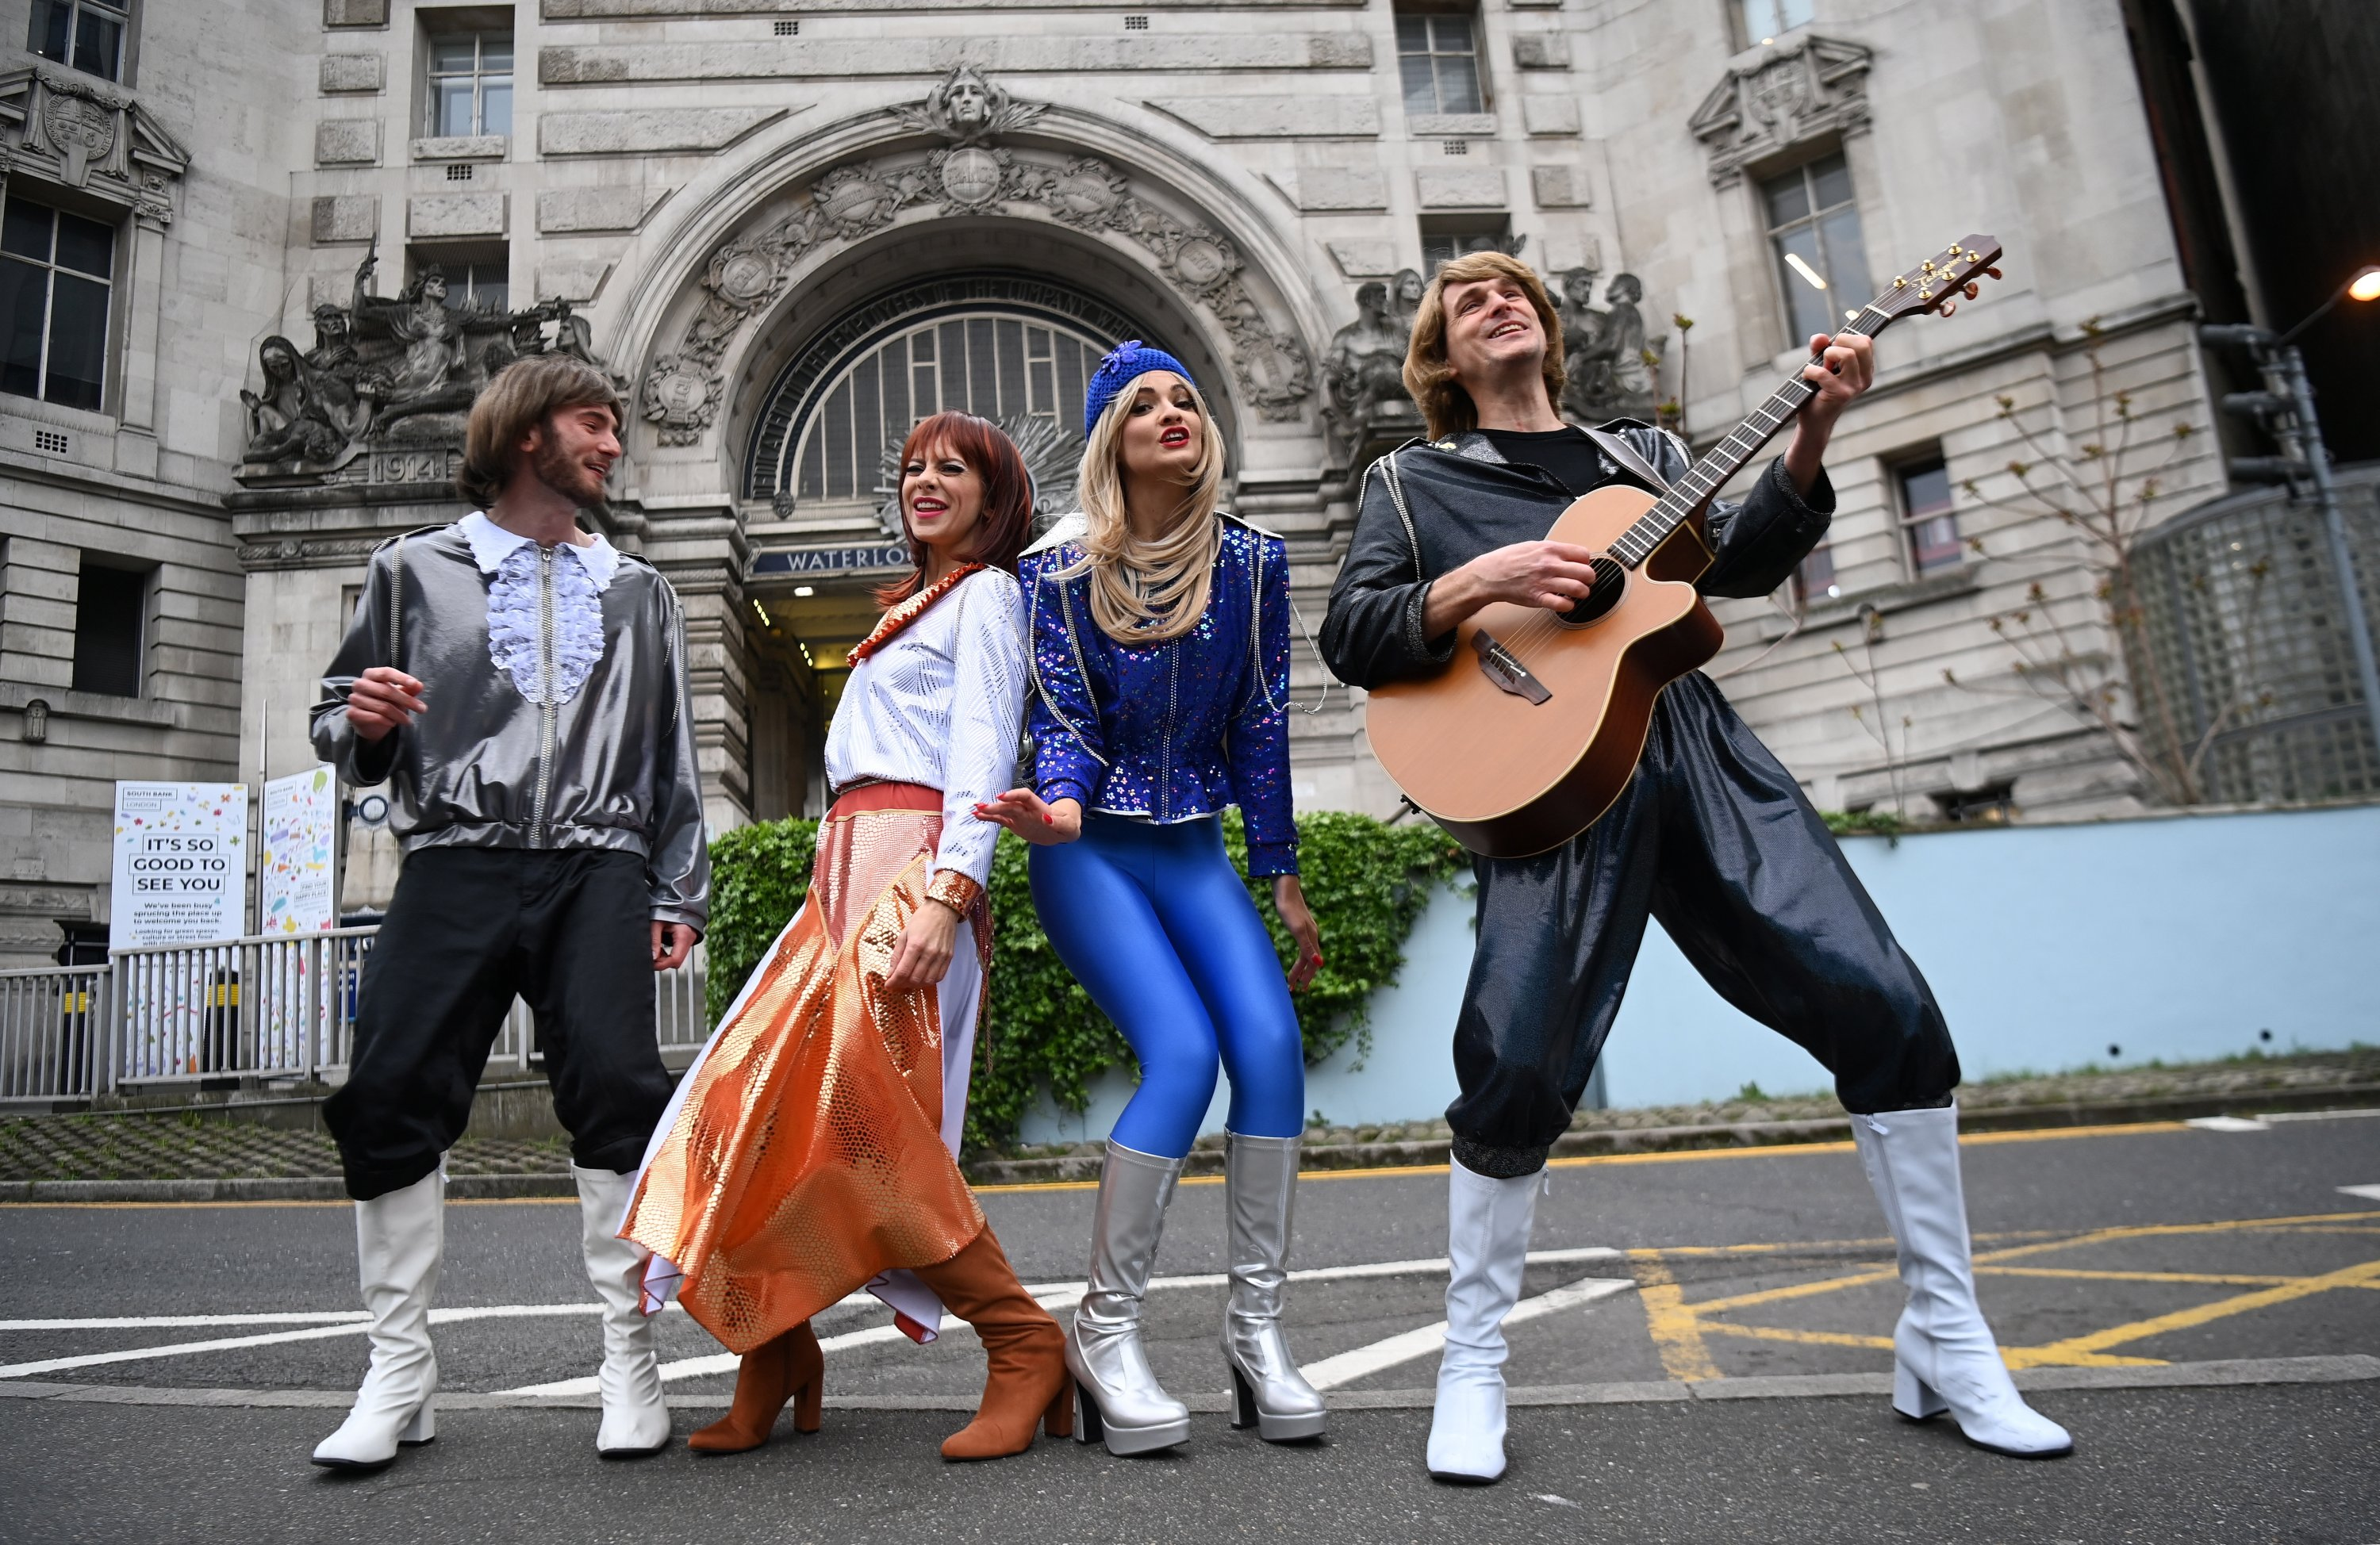 The cast of 'Abba Mania' poses outside Waterloo Station in London, Britain, May 14, 2021. (EPA/ANDY RAIN HANDOUT)